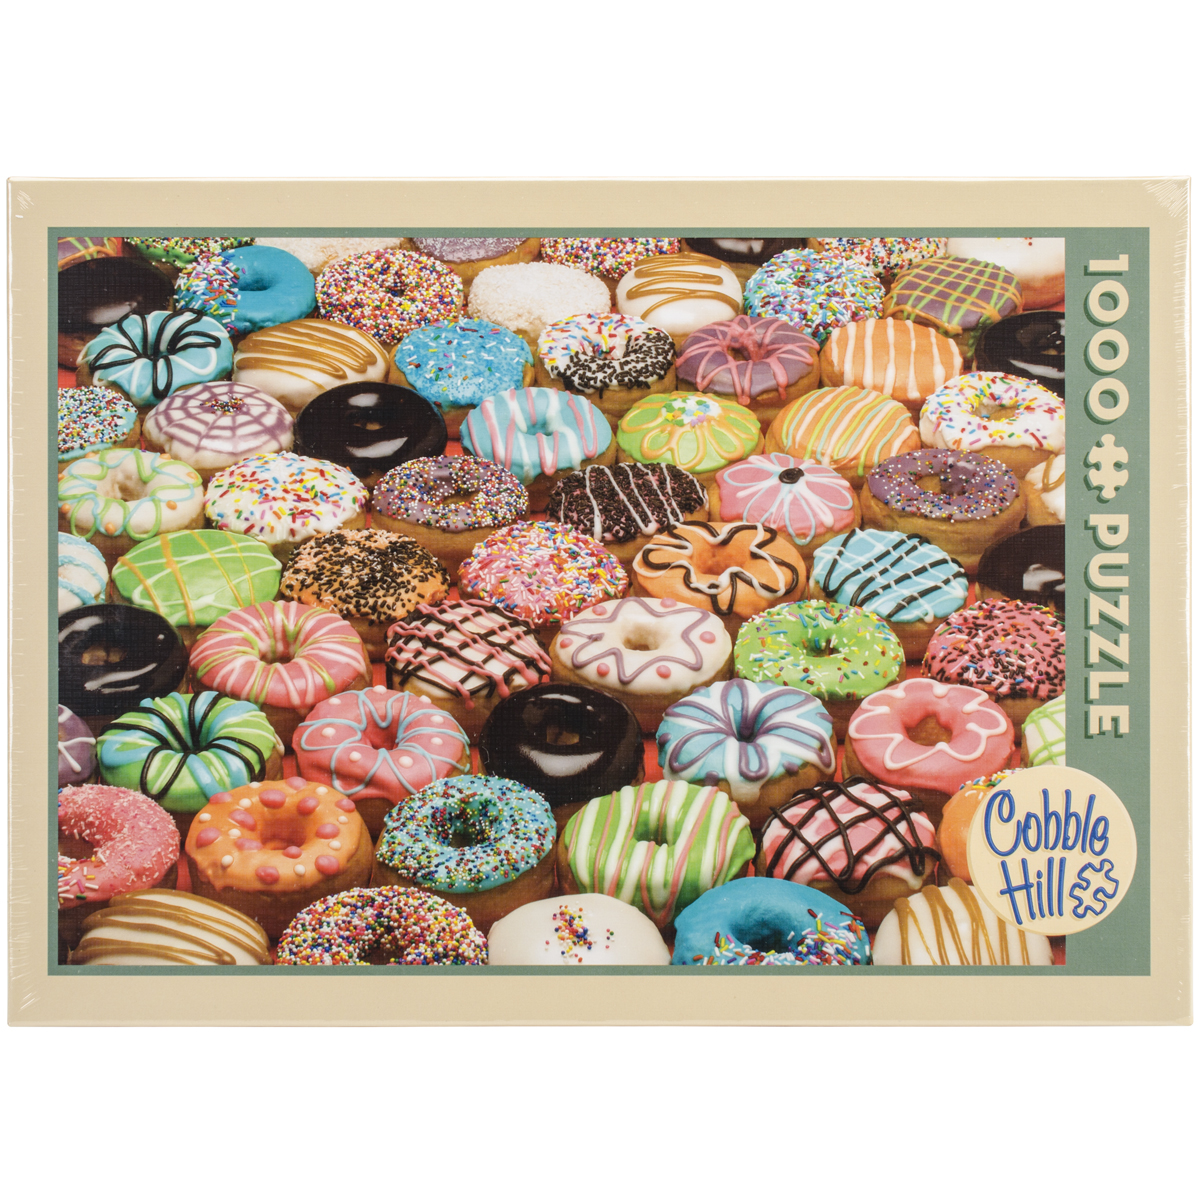 Cobble Hill: Doughnuts 1000 Piece Jigsaw Puzzle by Outset Media